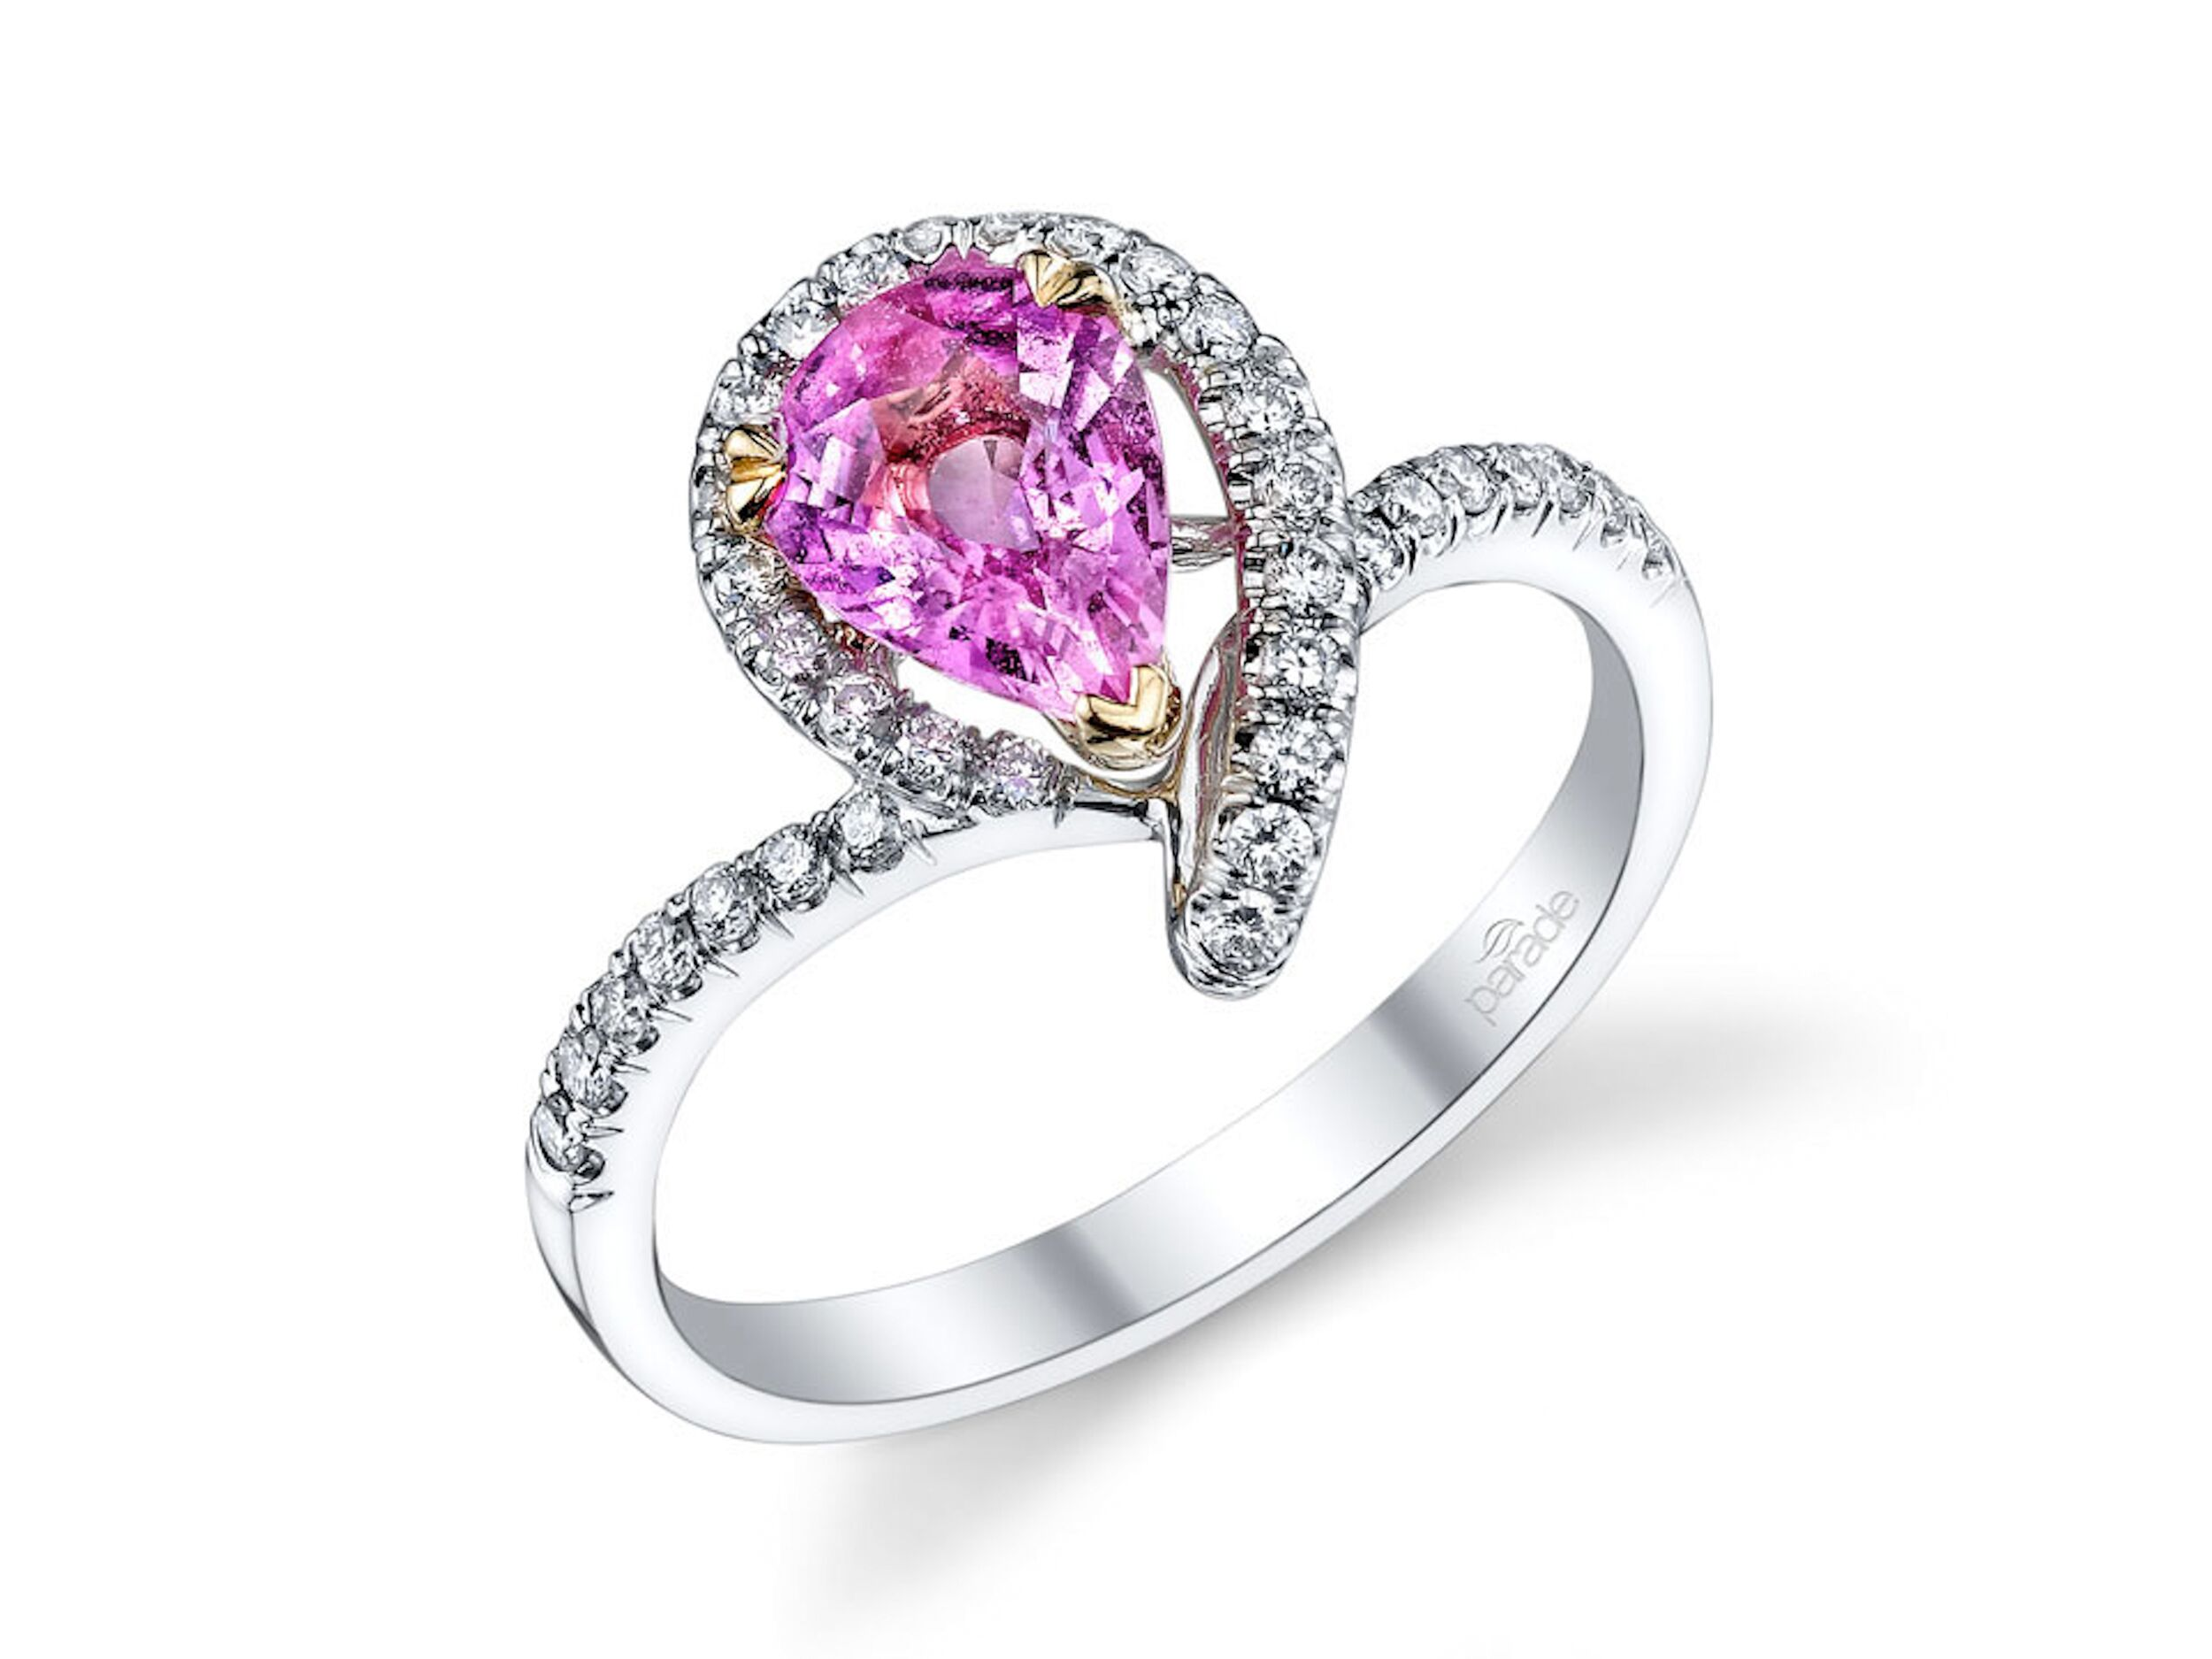 ring chicago jack rings product pink engagement jewellery marshall diamond pierce kelge company with accents kelege